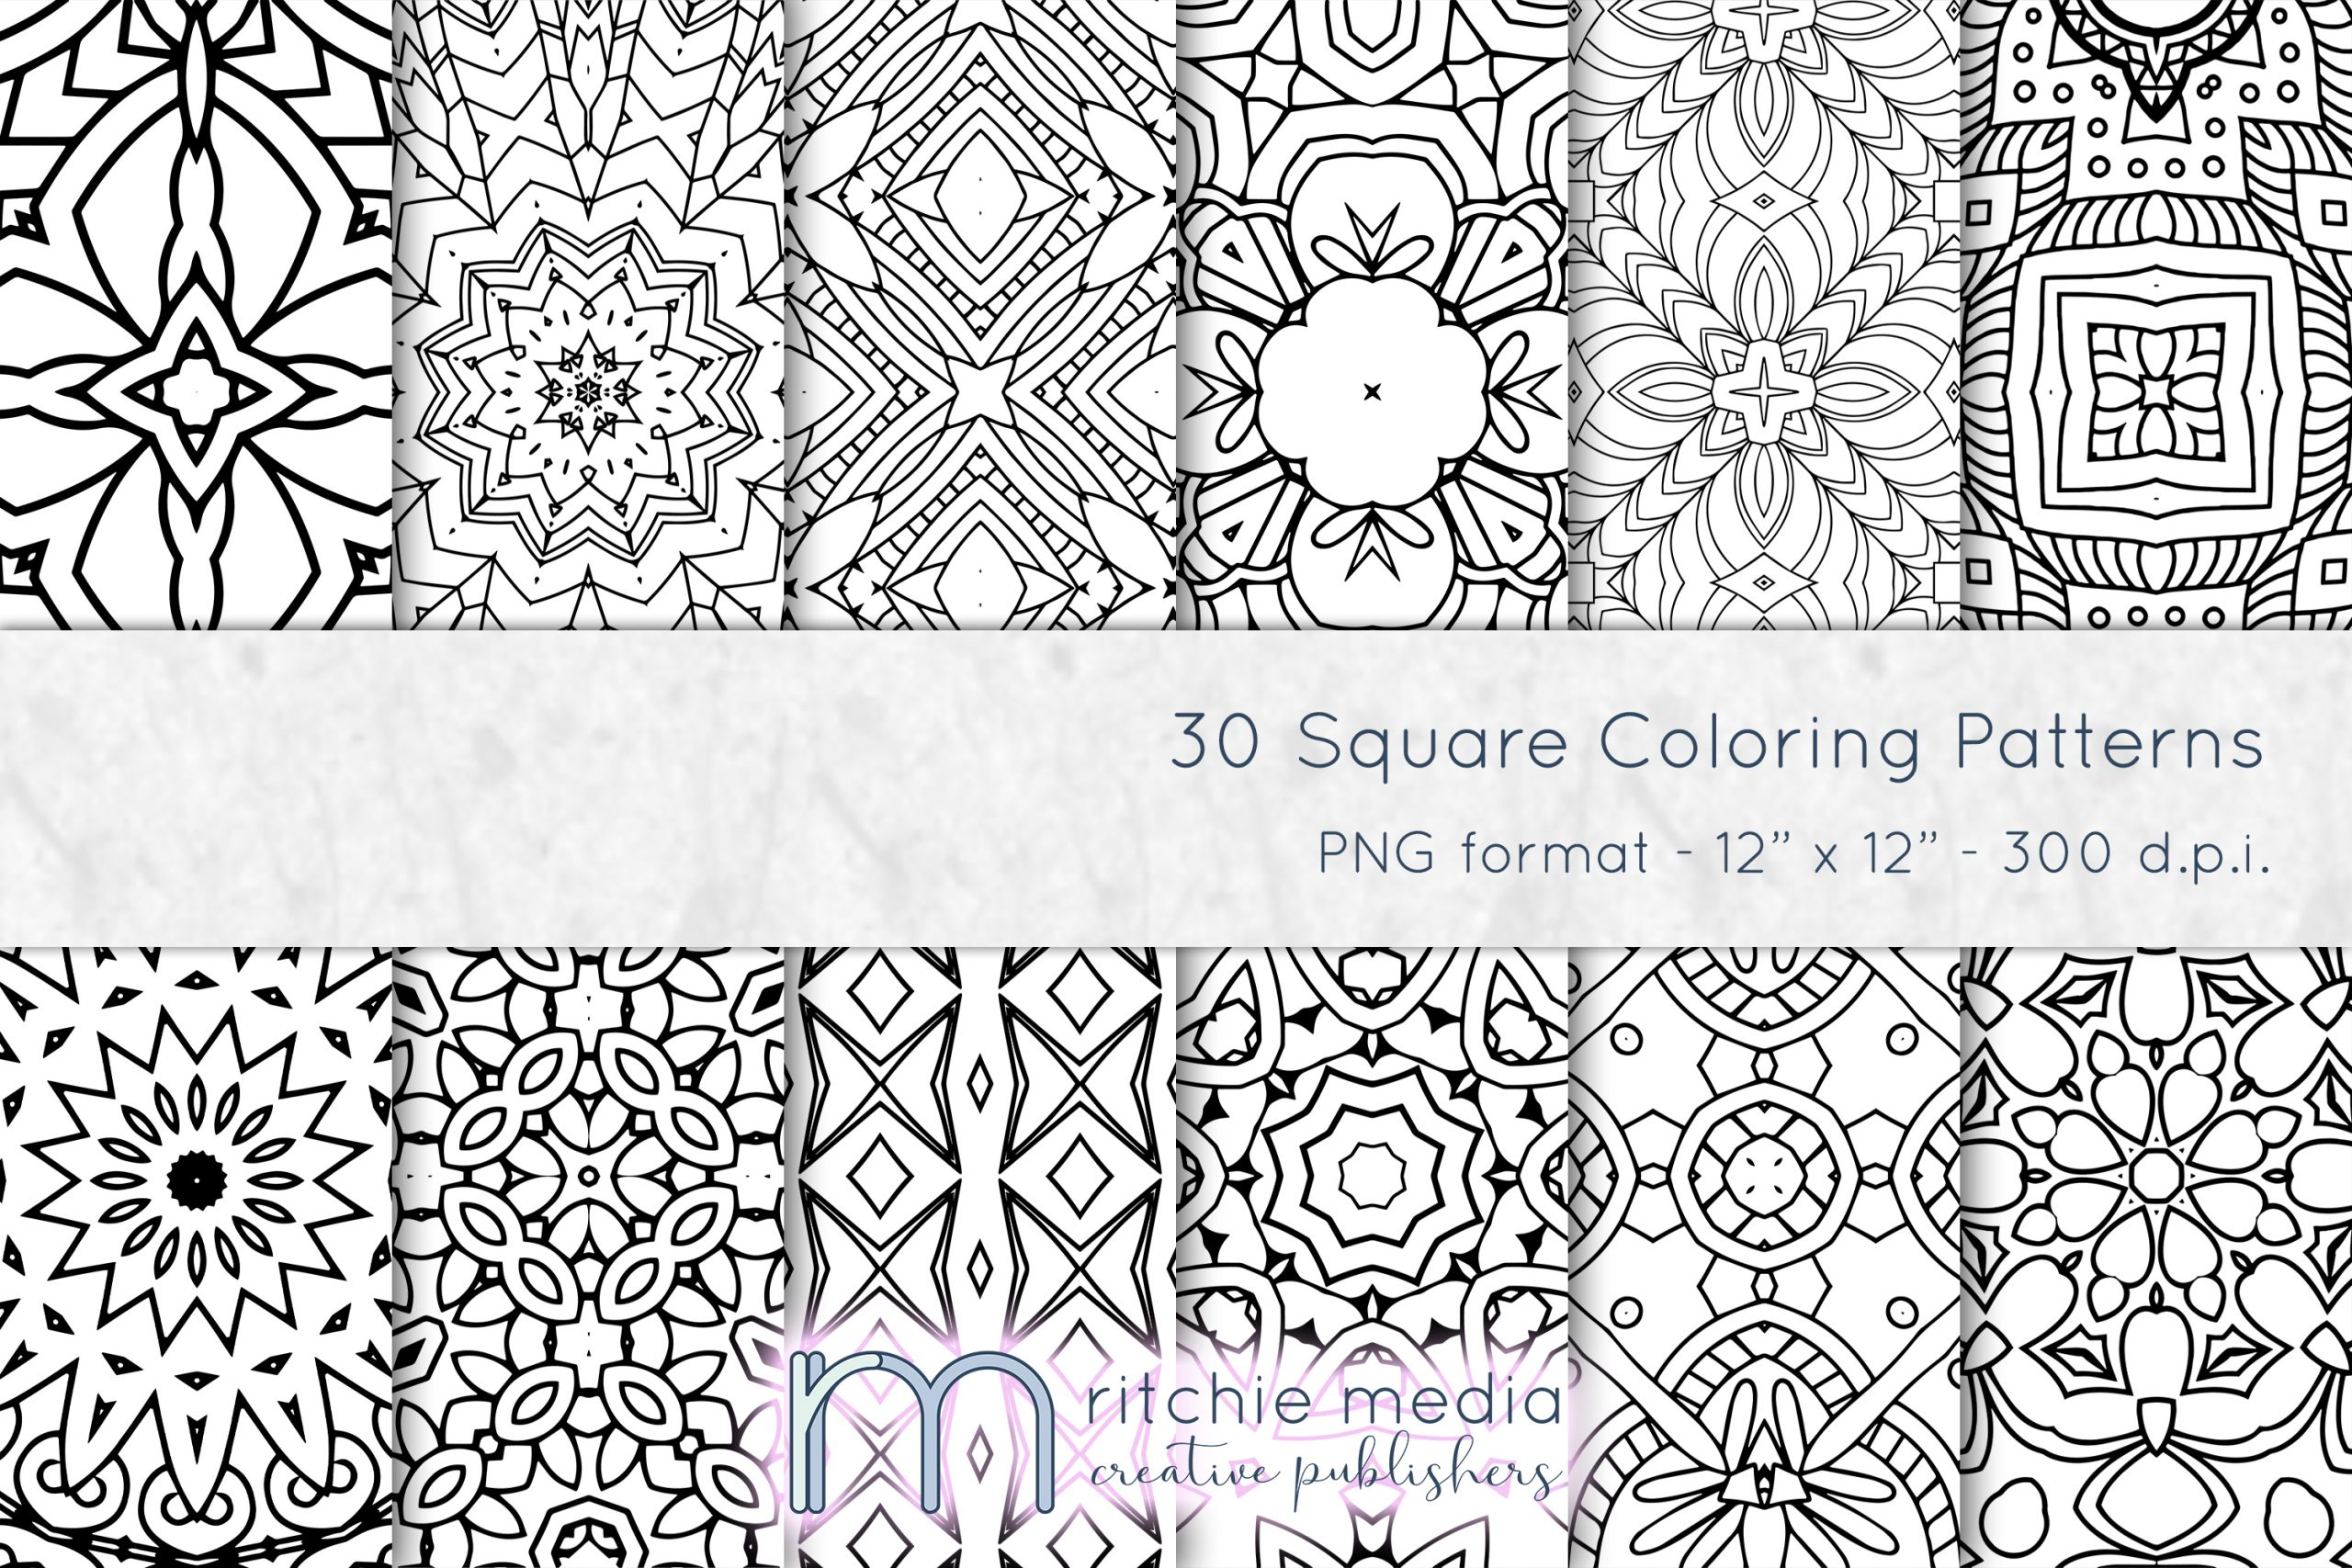 30 square coloring patterns